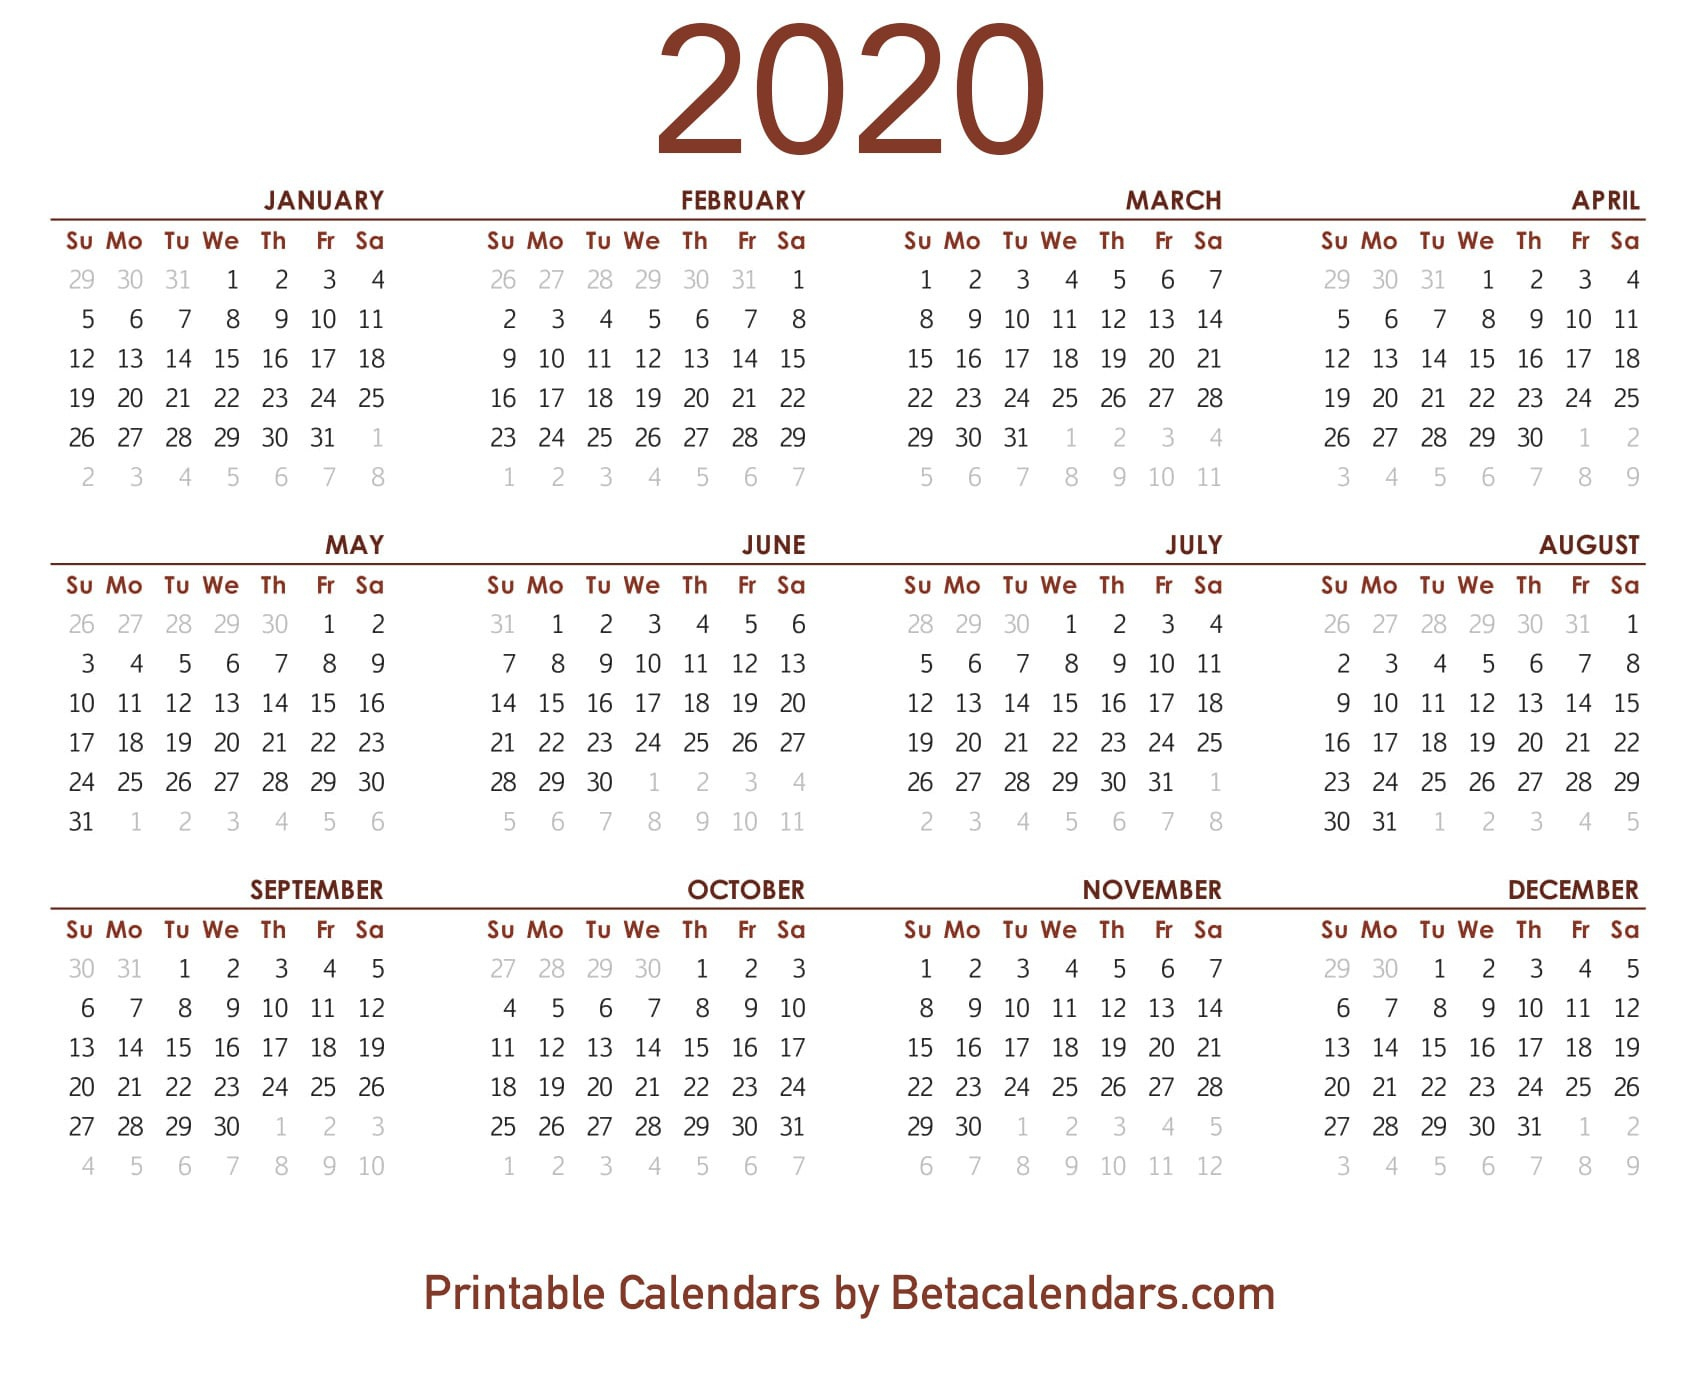 2020 Calendar - Free Printable Yearly Calendar 2020 within 2020 Calendar Free